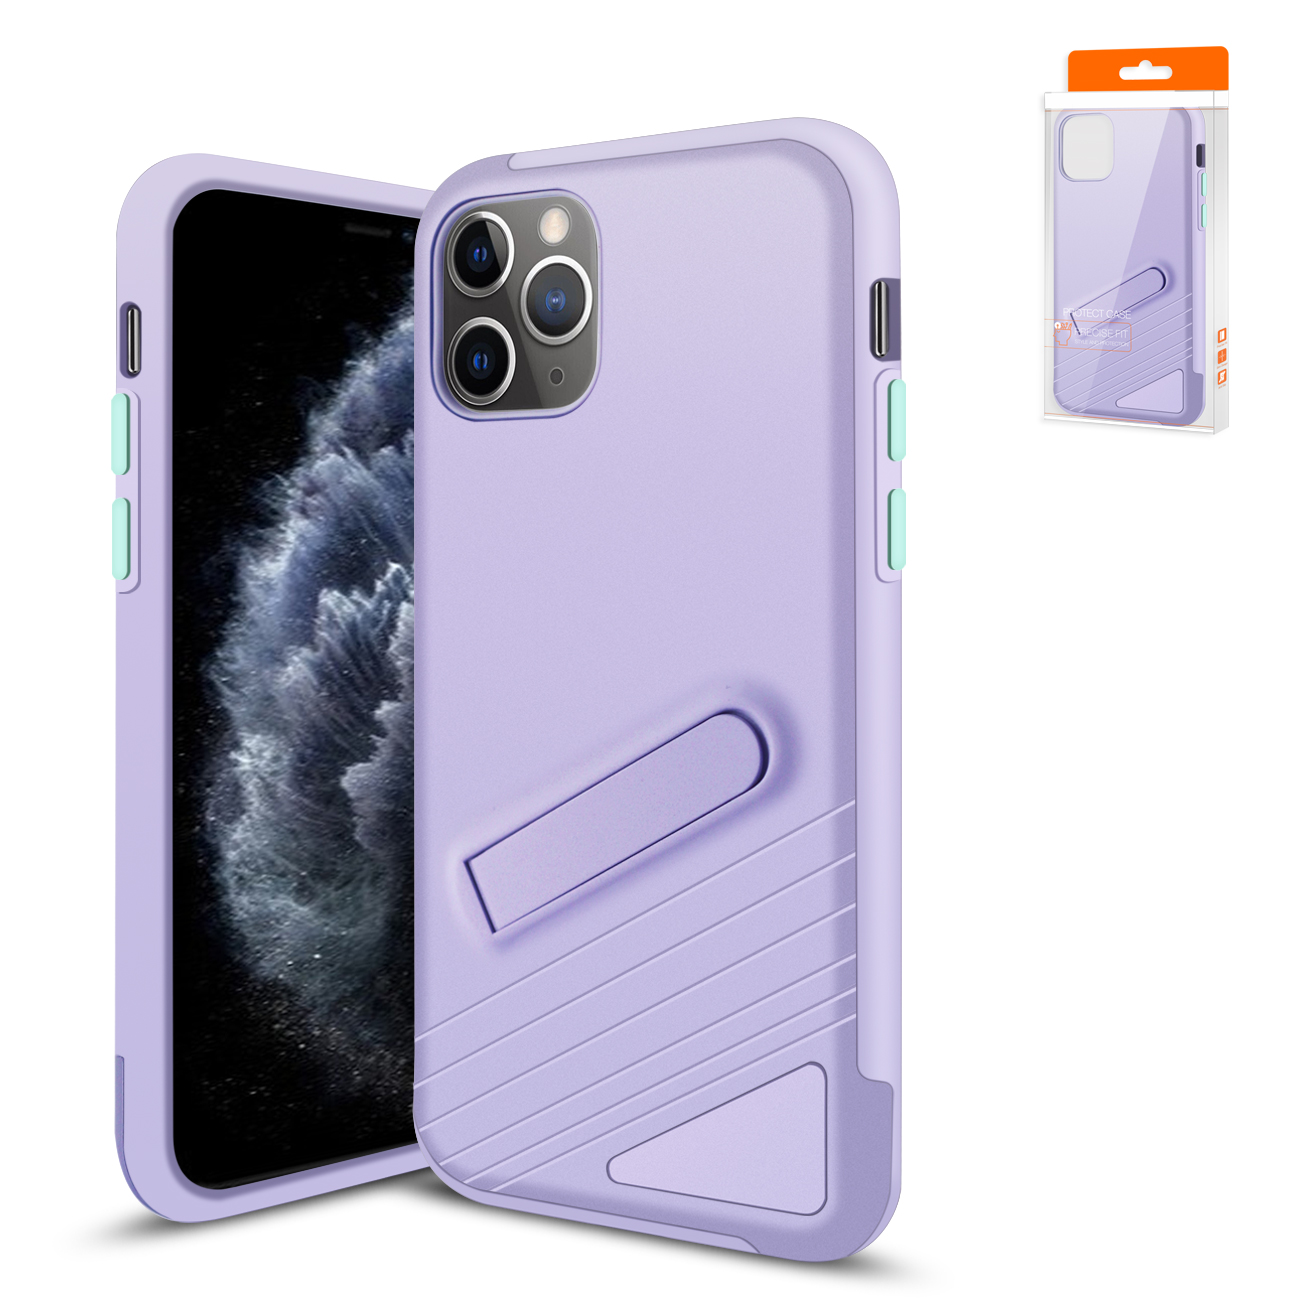 Apple iPhone 11 Pro Max Armor Cases In Purple